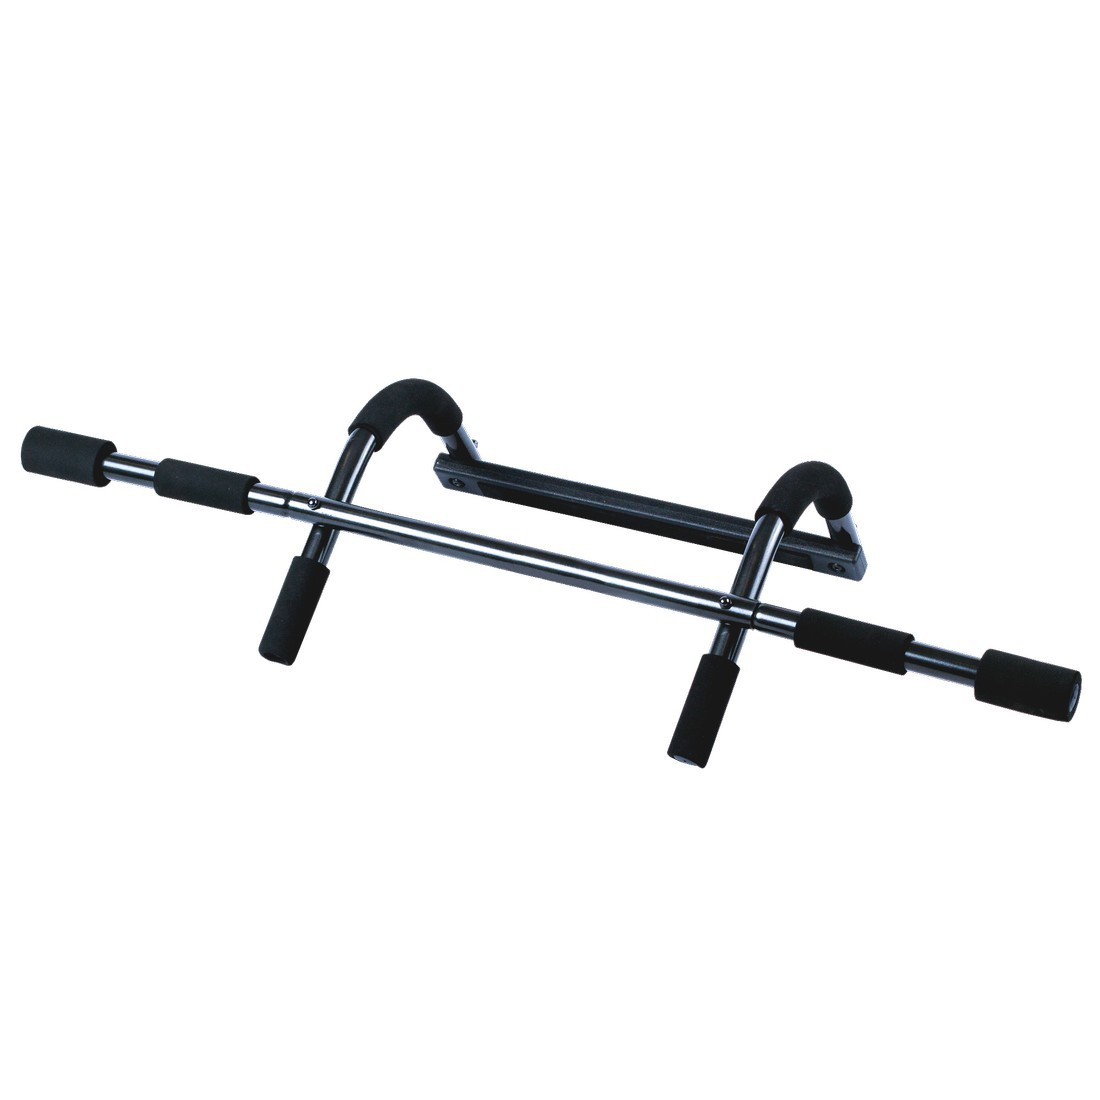 Spirit Pull Up Bar - Türreck, Klimmzugstange, Sit-Up Trainer, Multi-Gym-Gerät